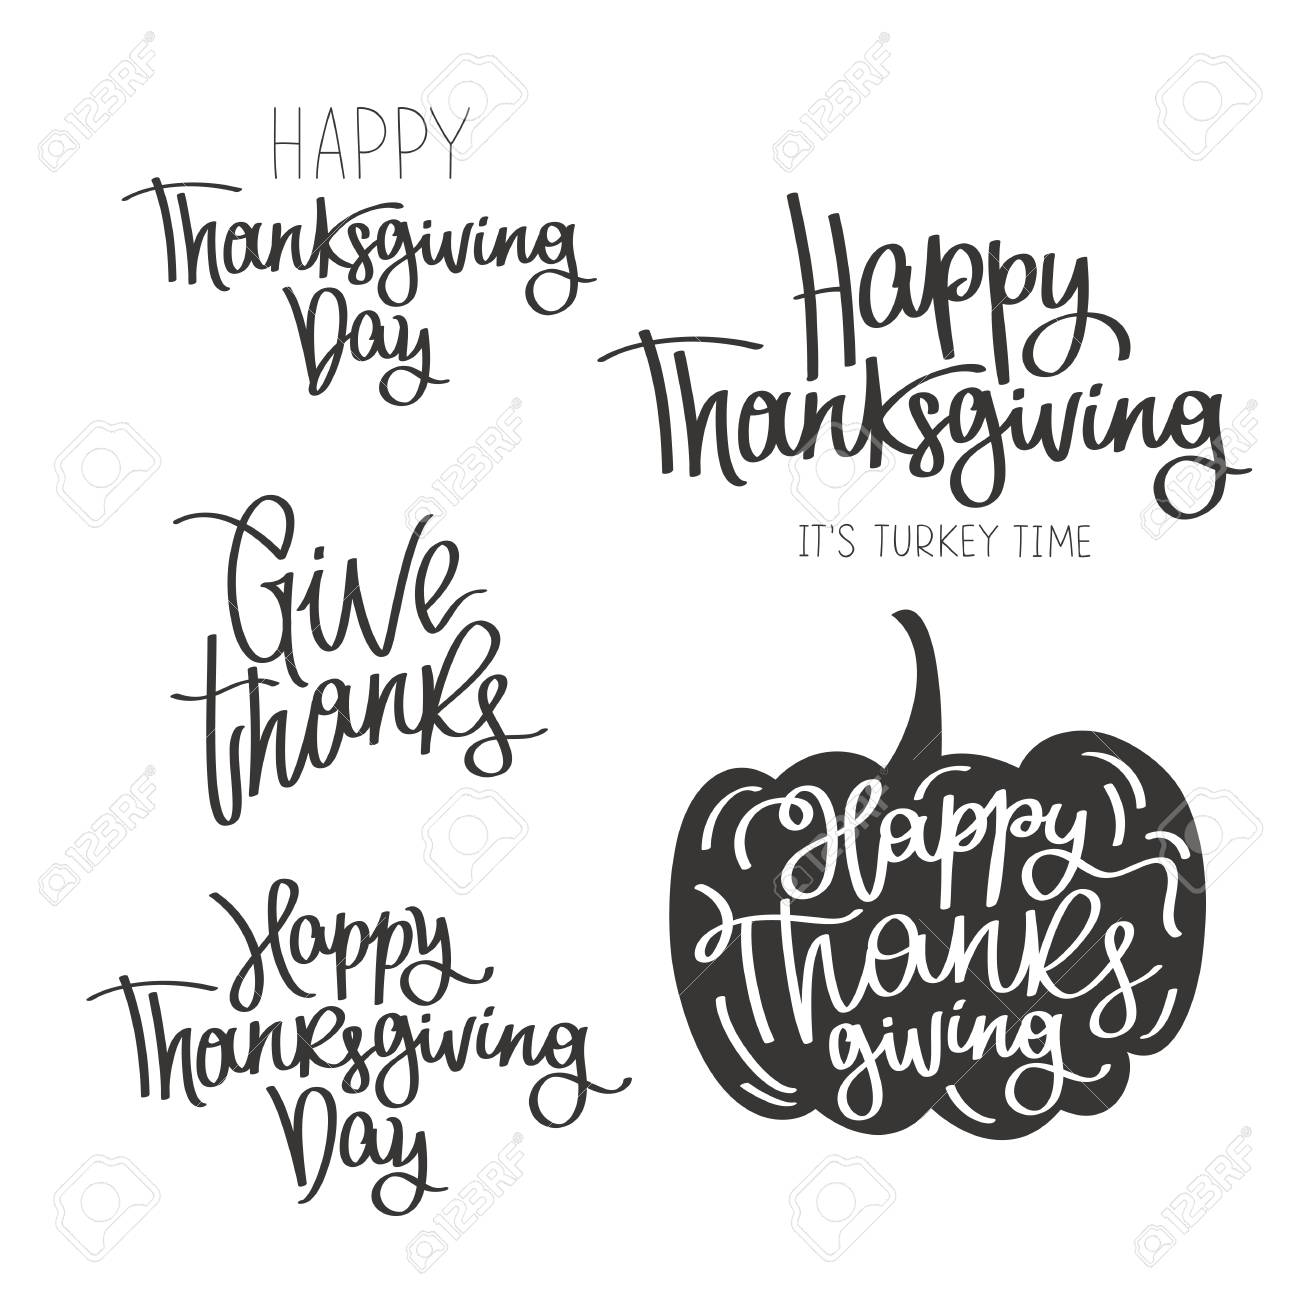 Set Of Quotes To The Happy Thanksgiving Day The Trend Calligraphy Vector Illustration On